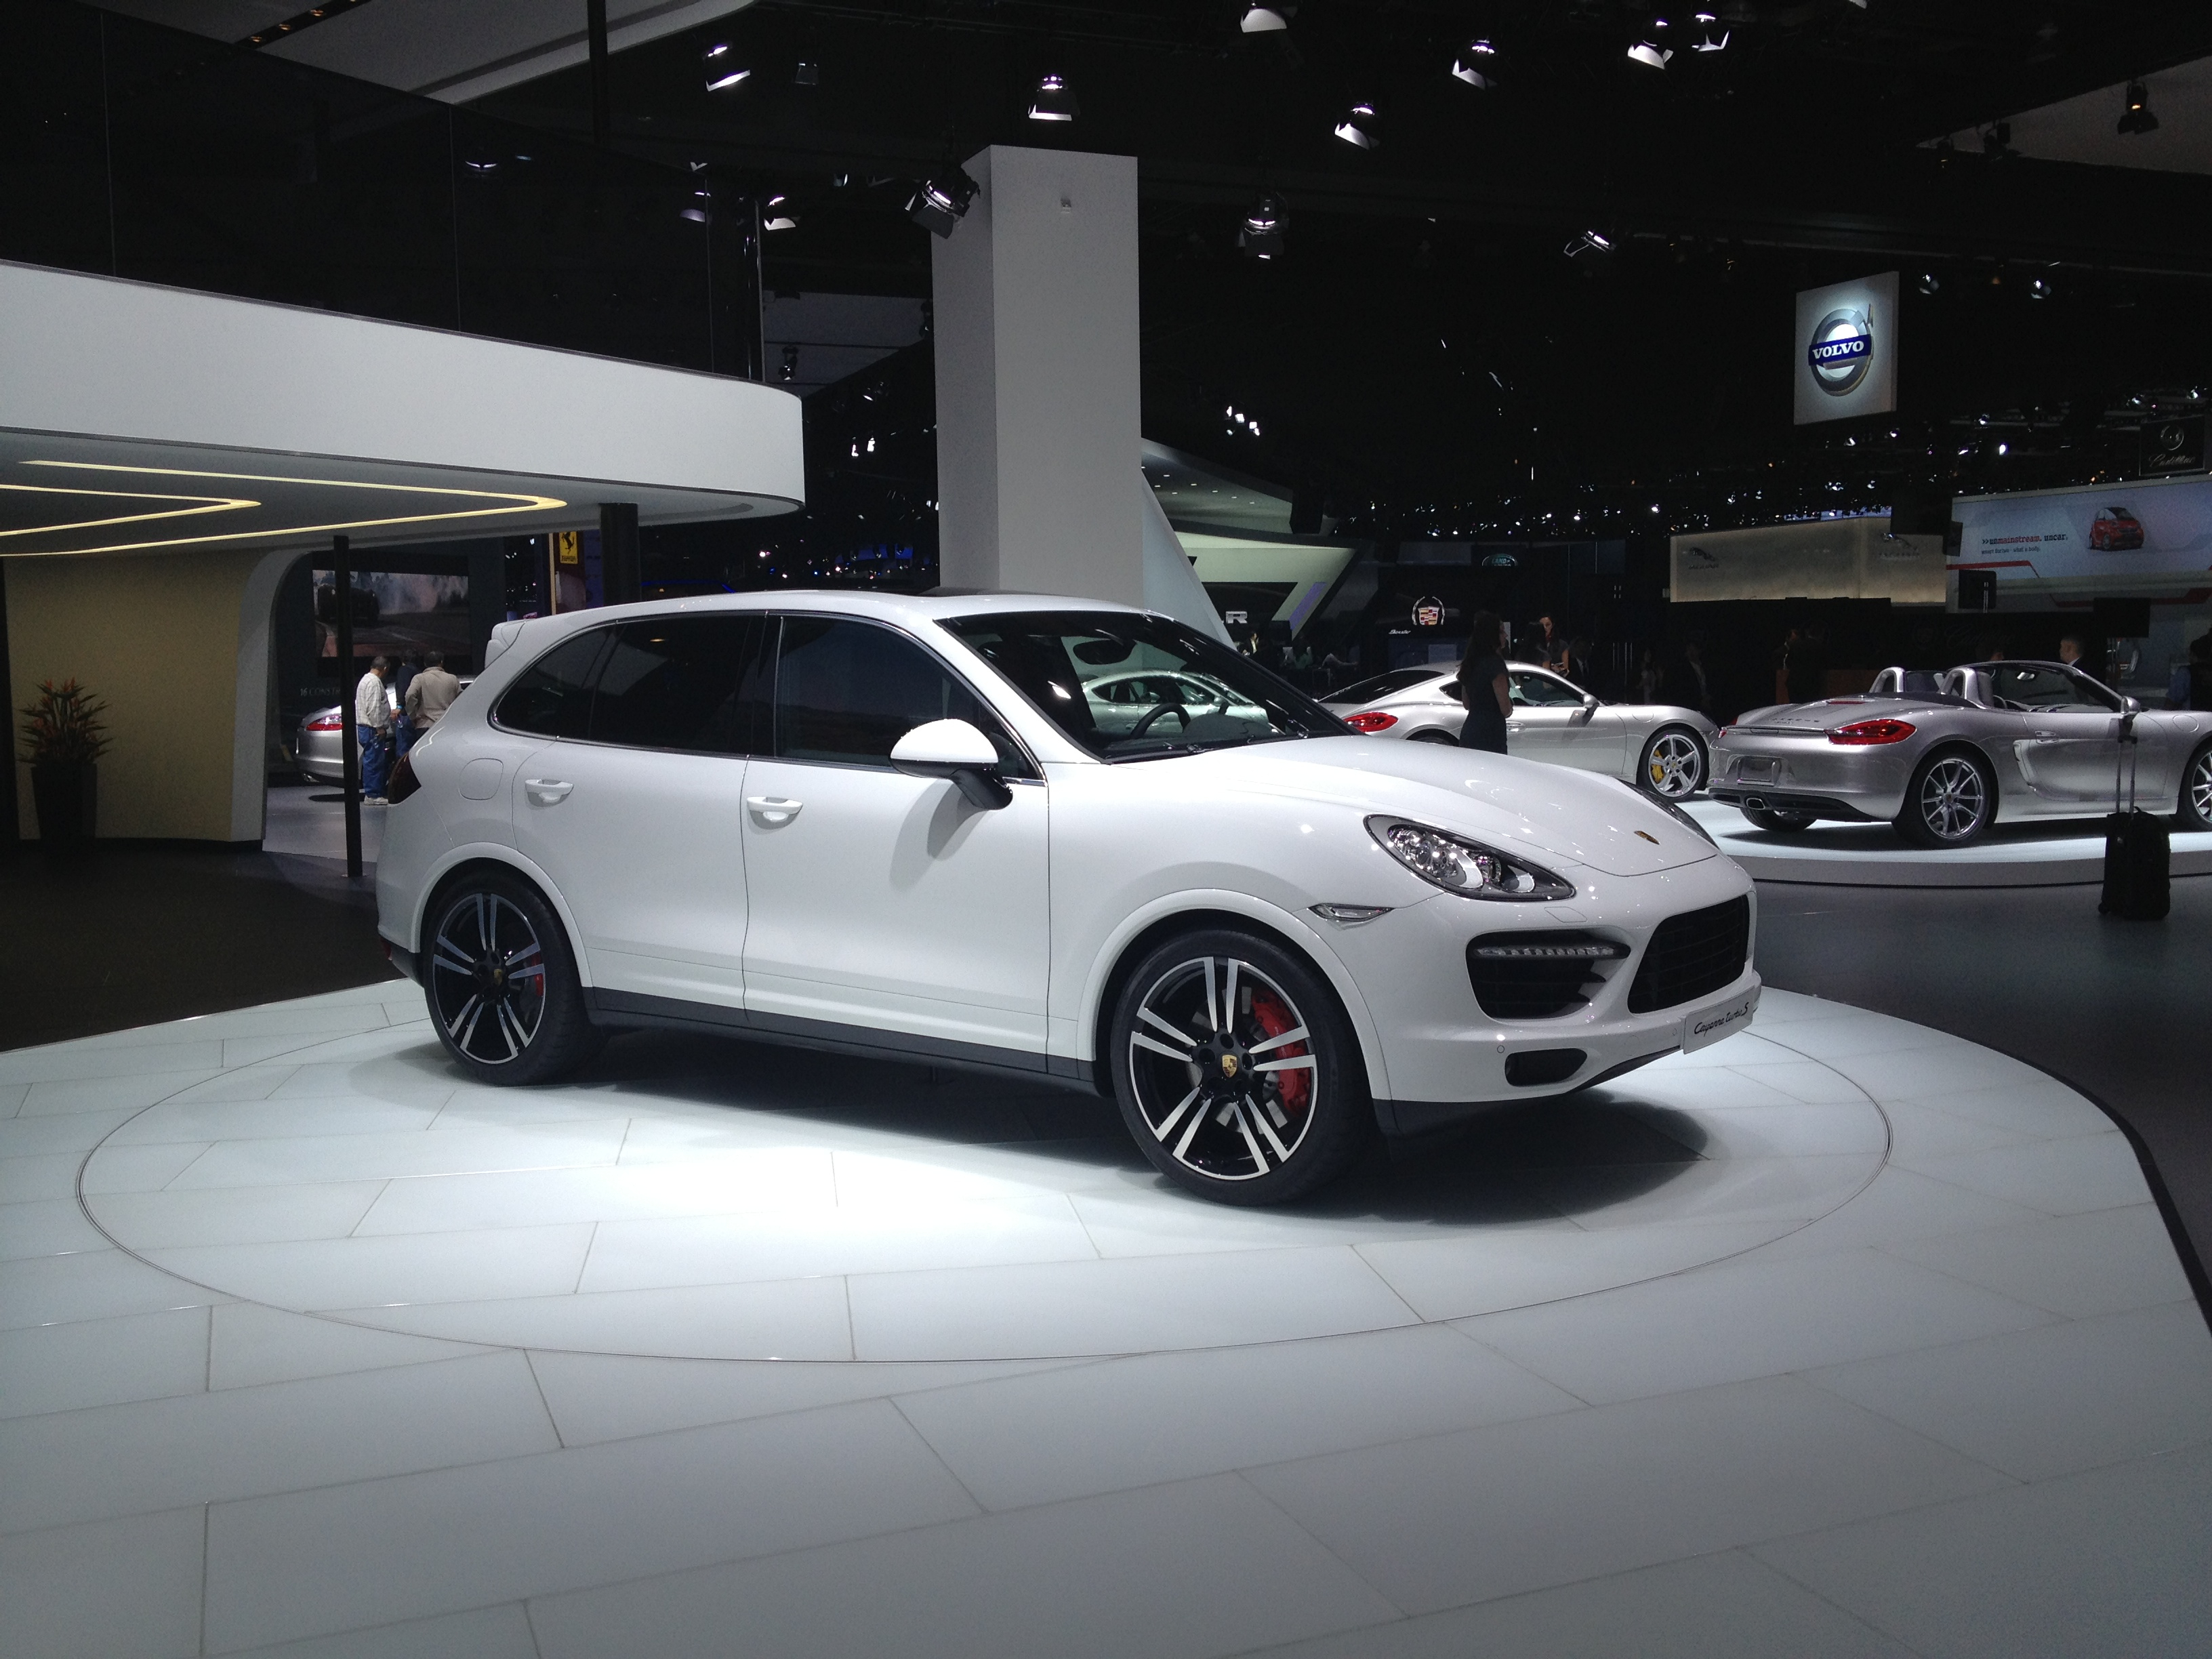 2013-porsche-cayenne-turbo-s-at-naias-2013-by-sarahlarson_01